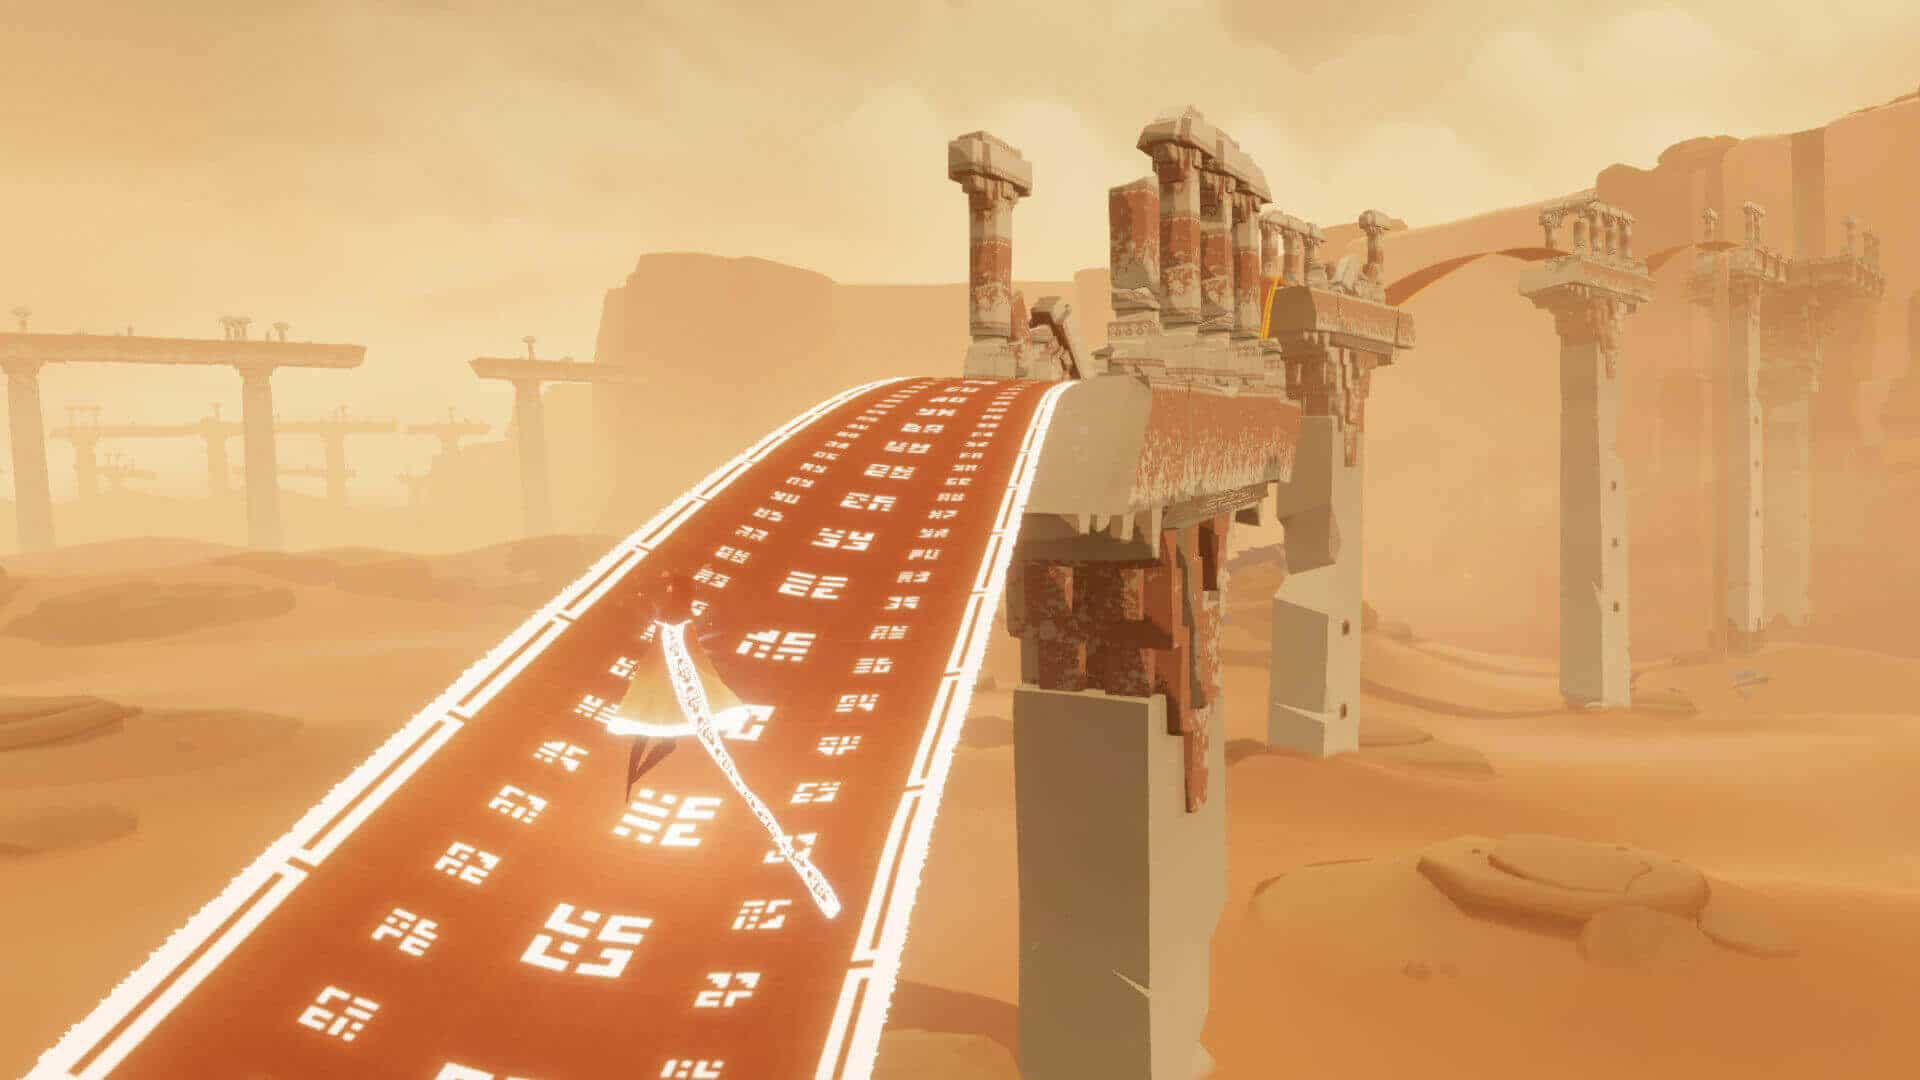 Journey is headed to PC through Epic Games' new storefront